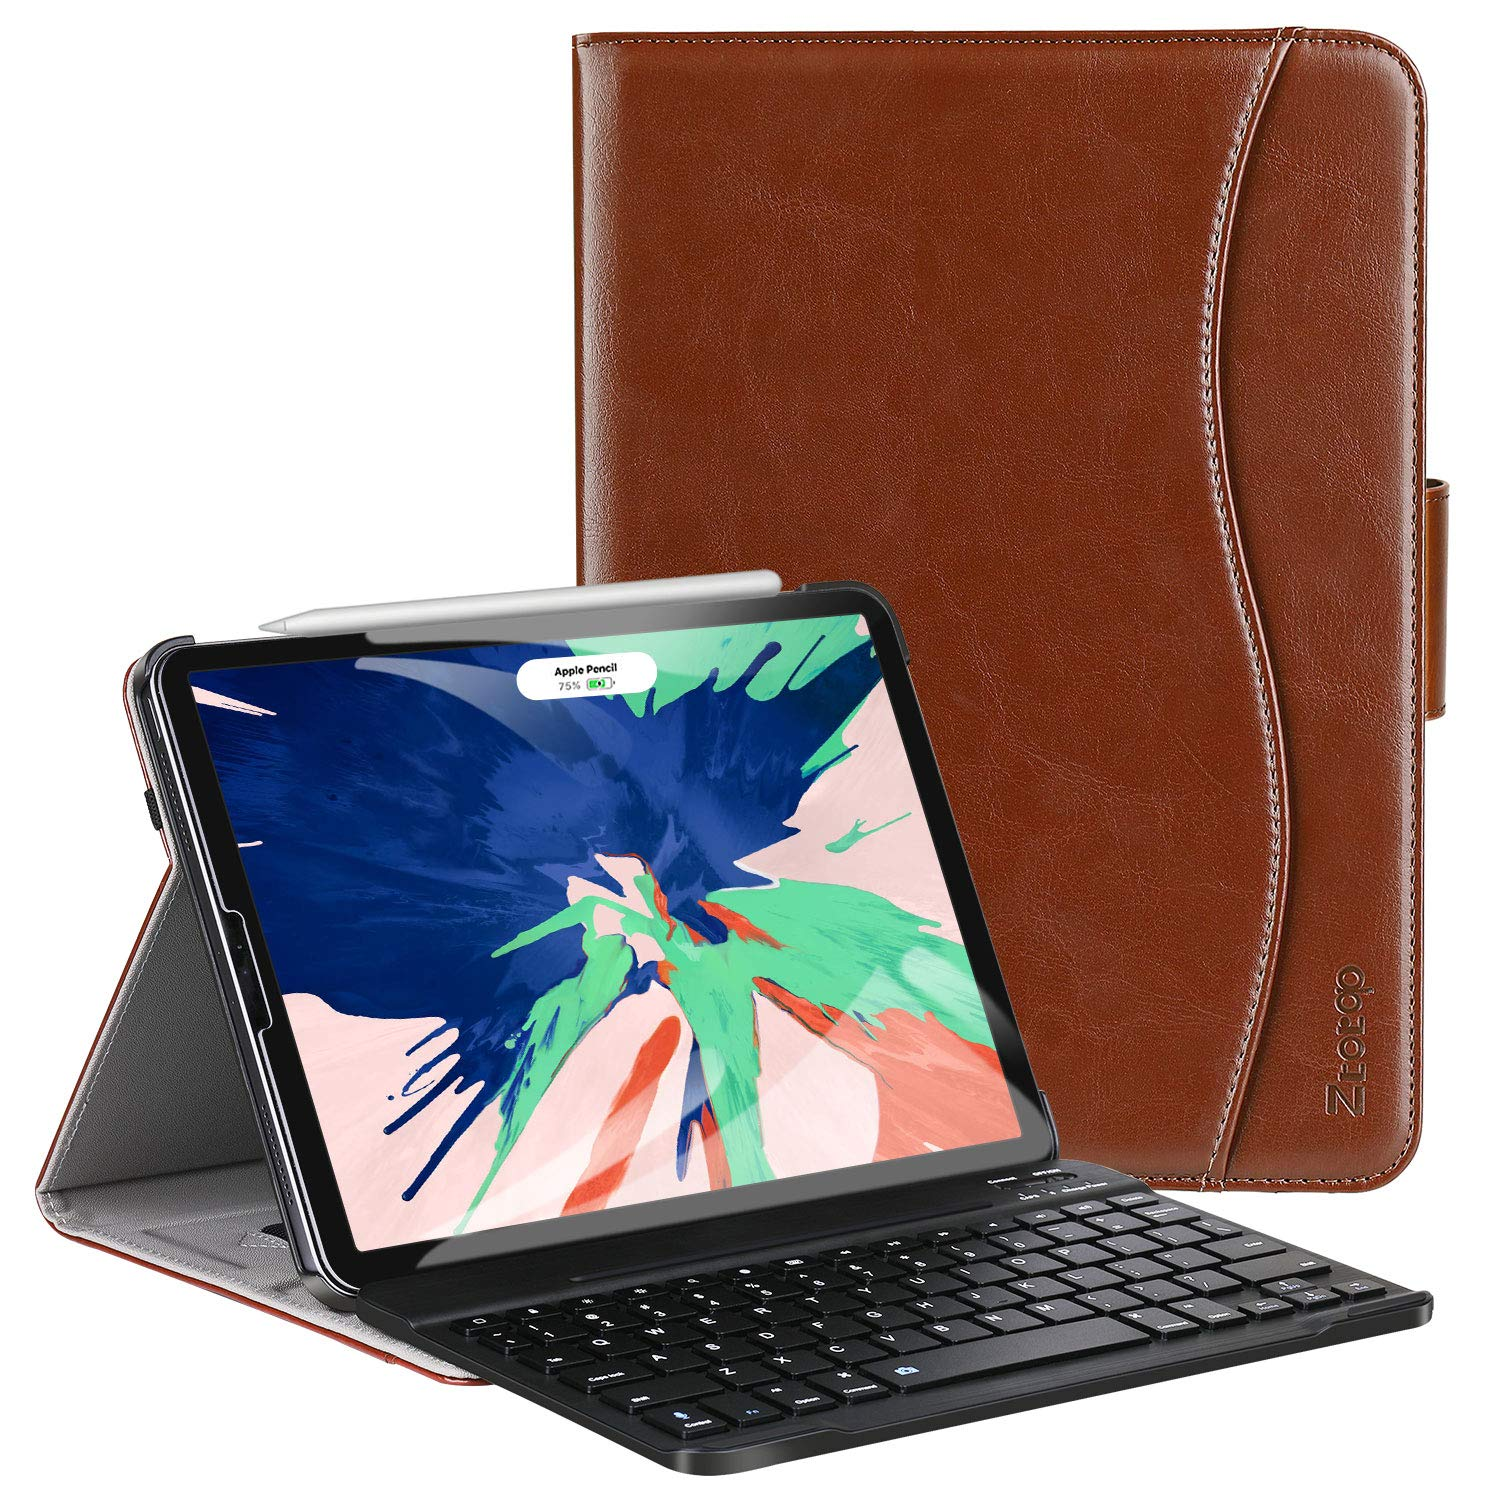 Ztotop Keyboard Case for iPad Pro 12.9 inch 2018 ,Protection for iPad Pro 12.9 inch 3rd Gen,Brown Detachable Wireless Keyboard Folio Cover with Auto Wake//Sleep Support 2nd Gen iPad Pencil Charging